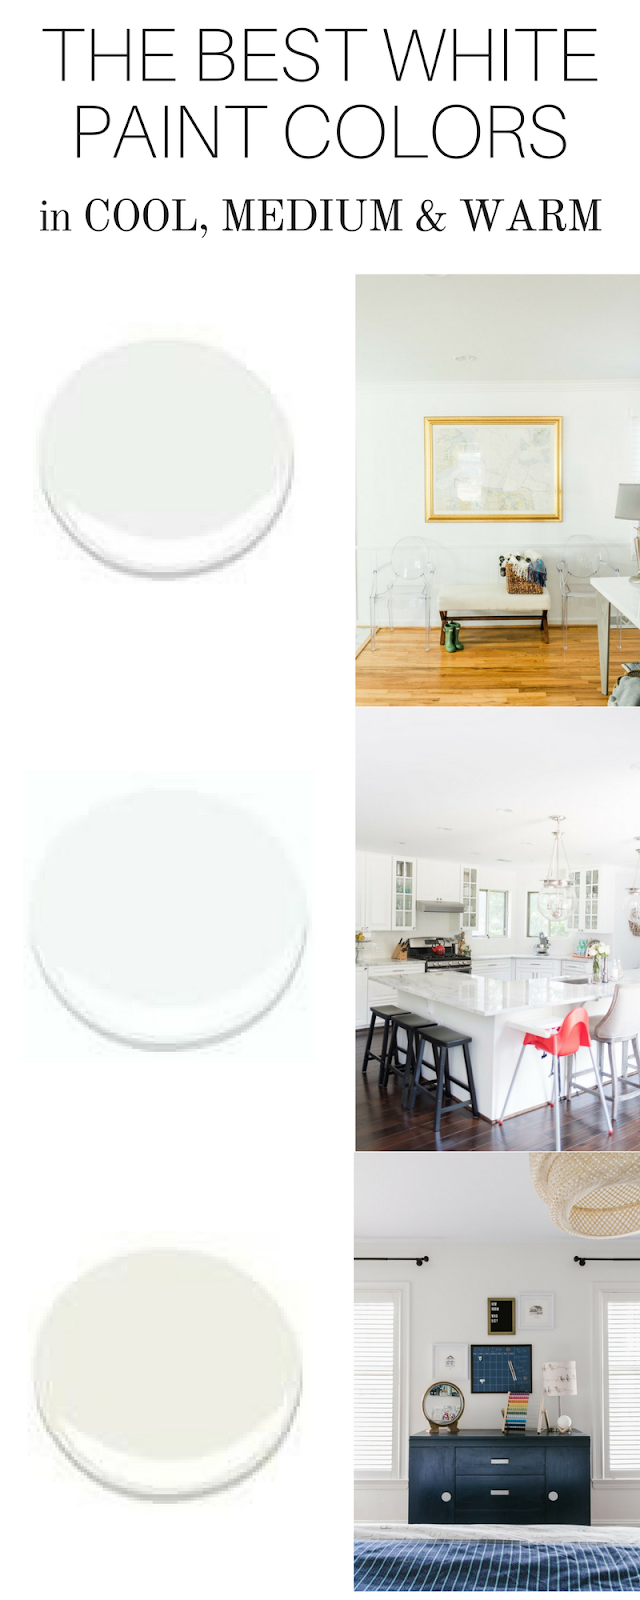 The Best White Paint Colors